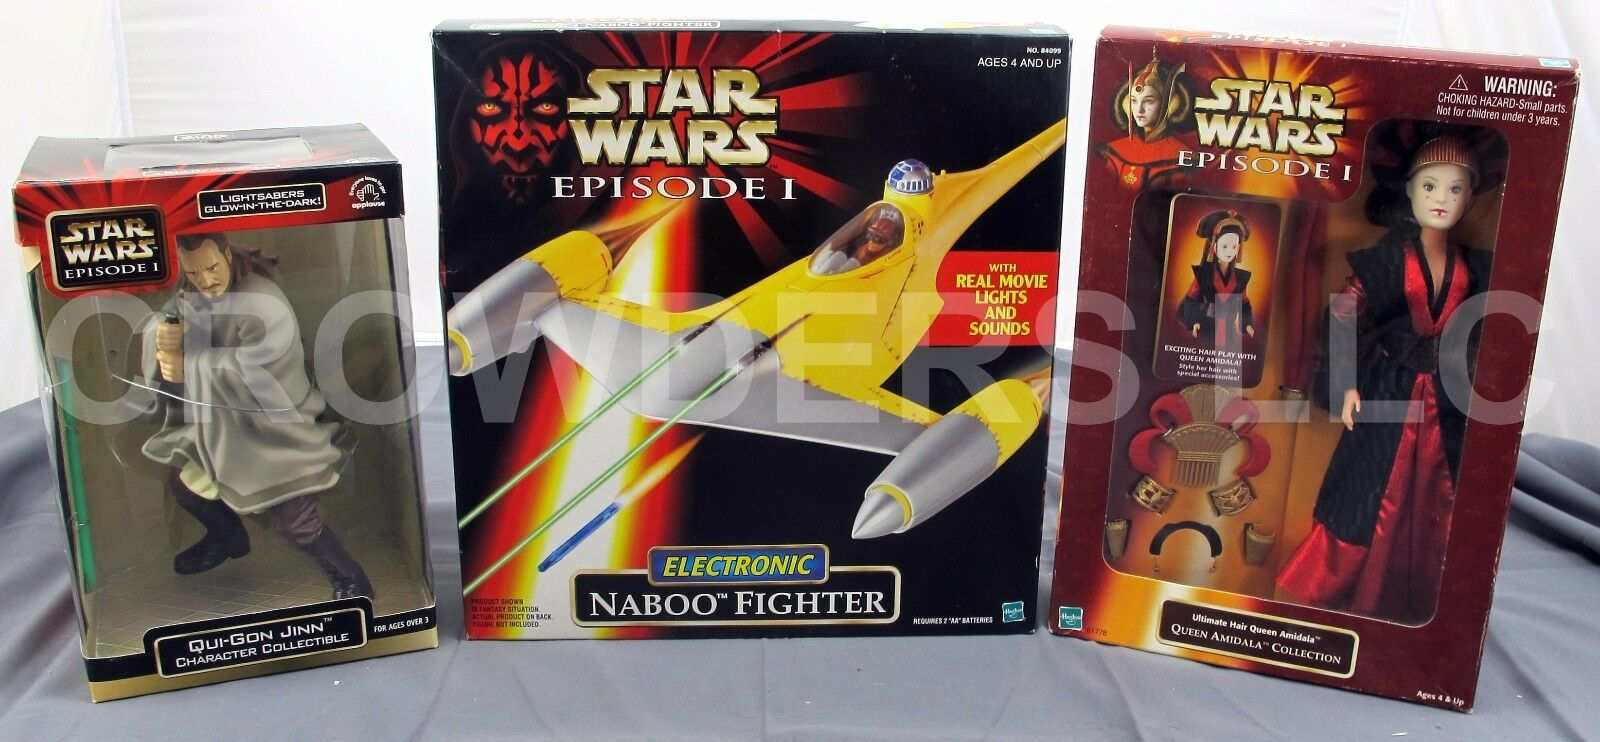 SW Episode 1 Electronic Naboo Fighter Ultimate Hair Queen Amidala & Qui Gon Jinn